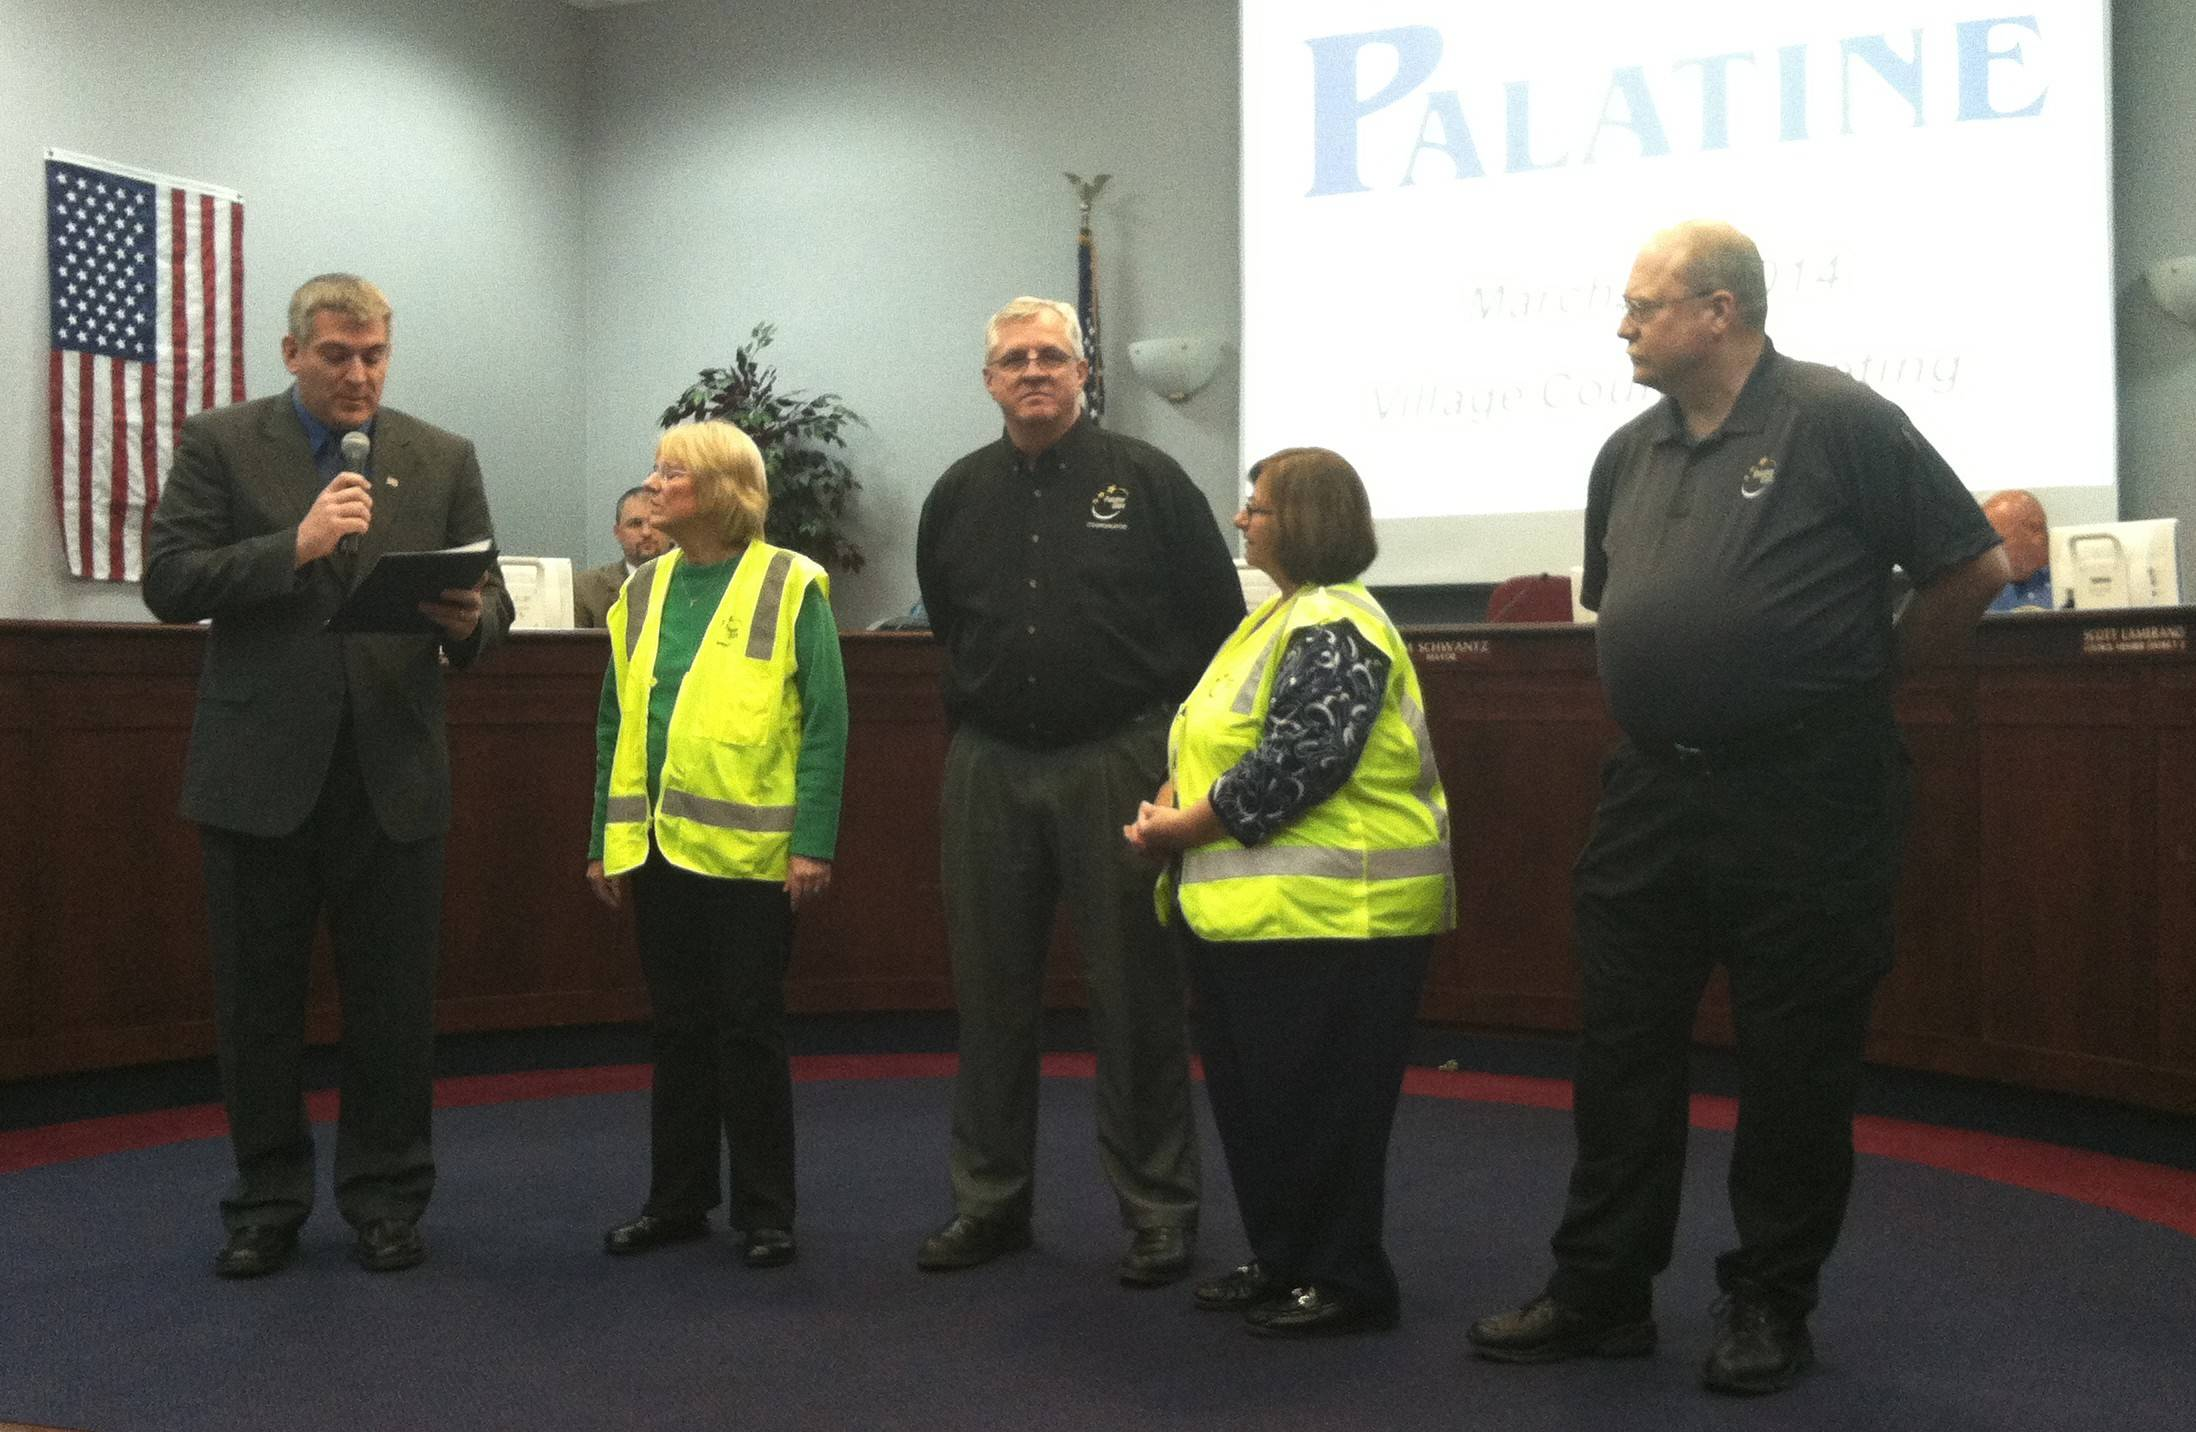 Palatine Mayor Jim Schwantz, left, reads from a proclamation honoring members of the Palatine Emergency Management Agency including, from left to right, Cindy Wolta, Tom Smith, Linda Trilling and Bob Worthy. Smith is retiring after nine years as the group's coordinator.